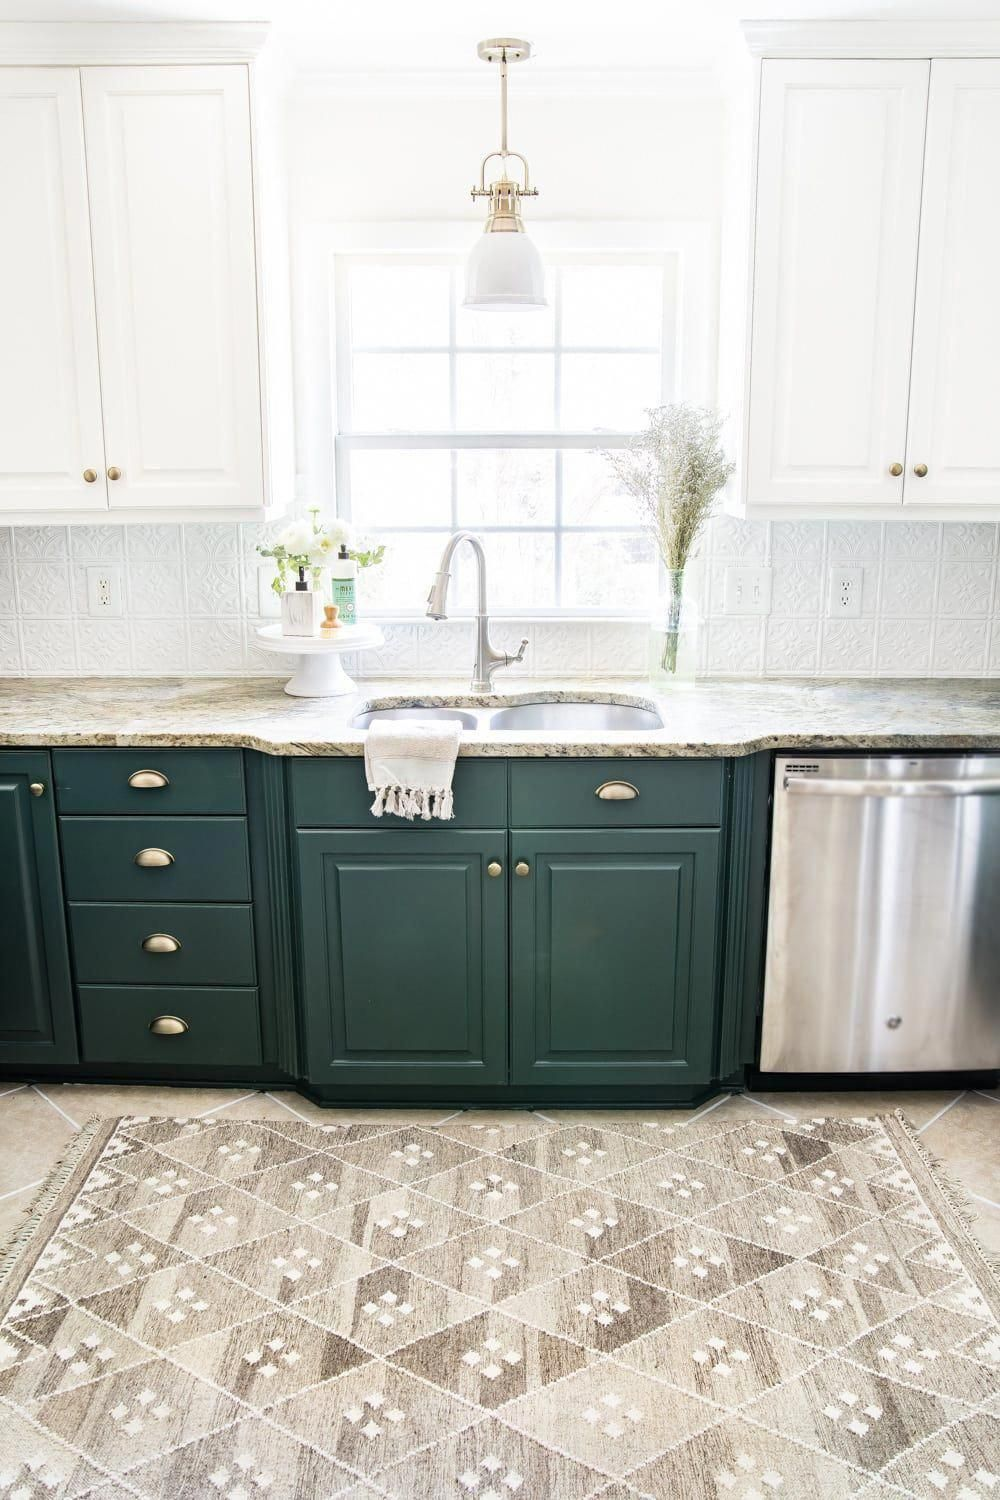 Deep Green Kitchen Cabinets With Diy Pressed Tin Ceiling Tile Backsplash And Layered Memory Foam Kitchen Rug Kitchencabinets En 2020 Maison Easy Cuisine